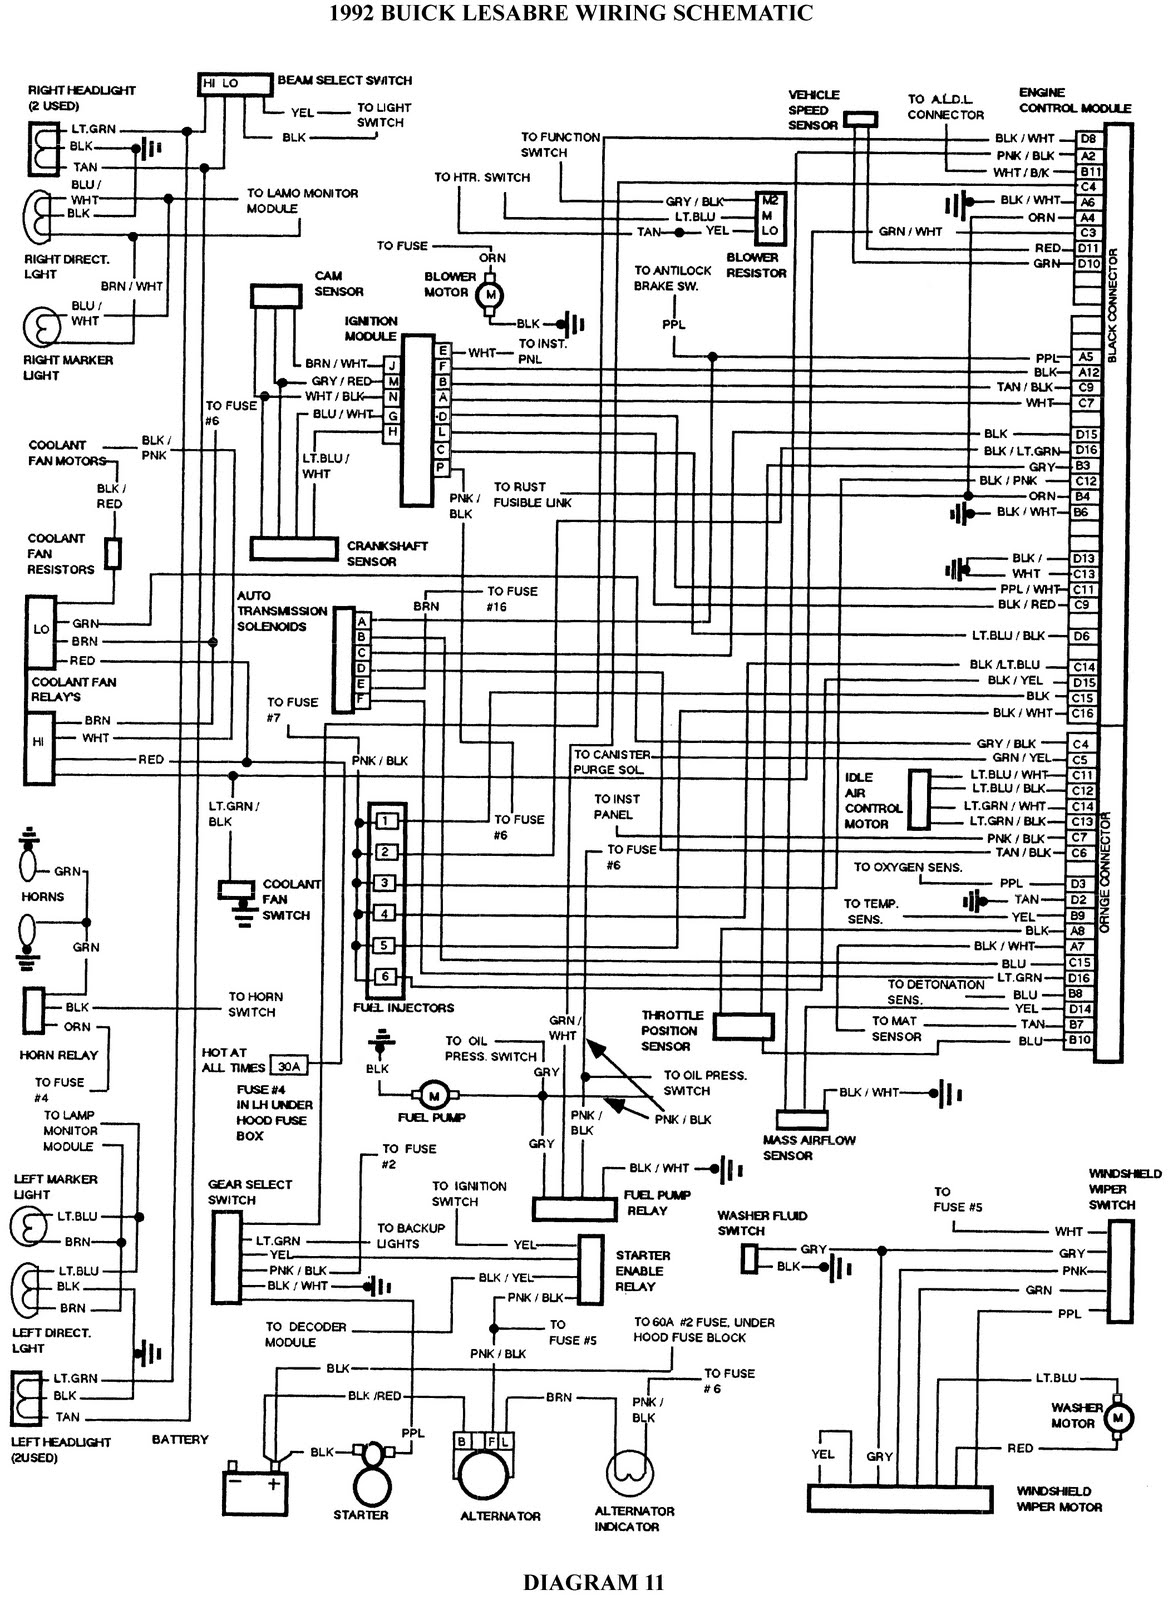 1997 Oldsmobile Silhouette Wiring Diagram - Wiring Diagram Source on